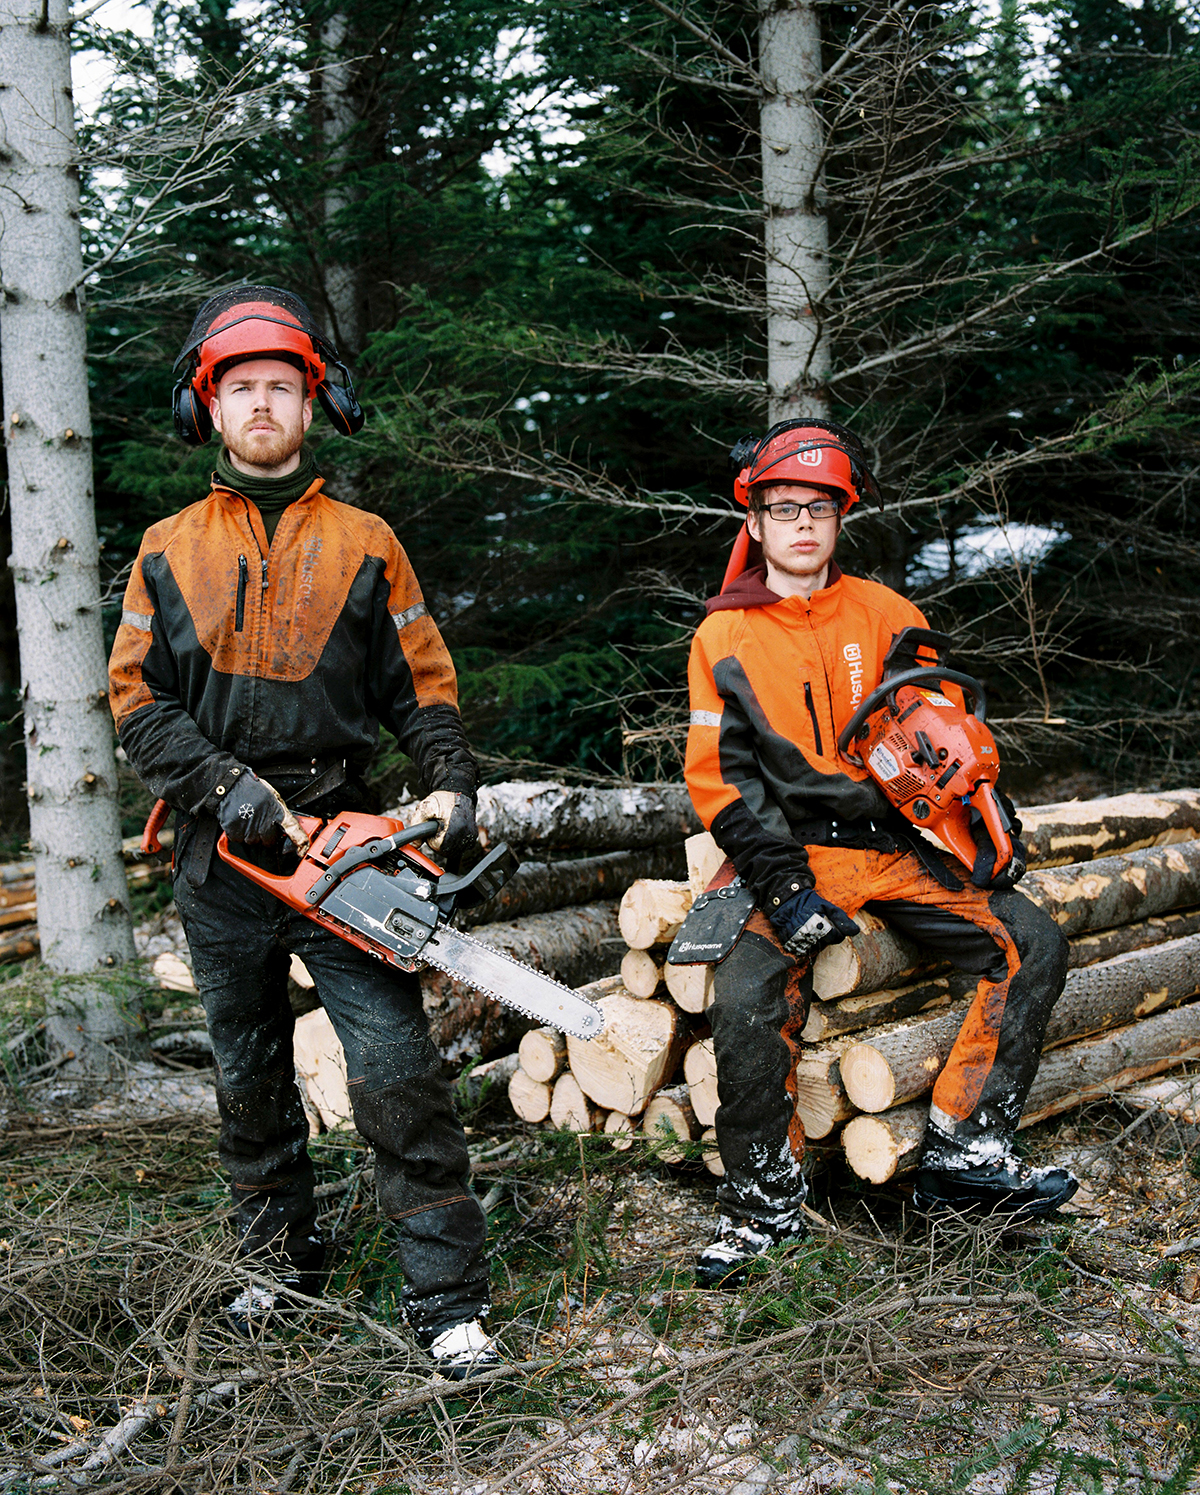 Hjalti and Ivar work for the Forestry services in Hallormsstaður National Forest, located near Eglisstaðir. Hjalti has worked there for one year and Ivar for six. Within Hallormsstaður there are 85 tree and shrub species from 600 places in the world. Gathered from places with similar climates such as Northern Scandinavia, British Columbia, Russia, and Alaska.